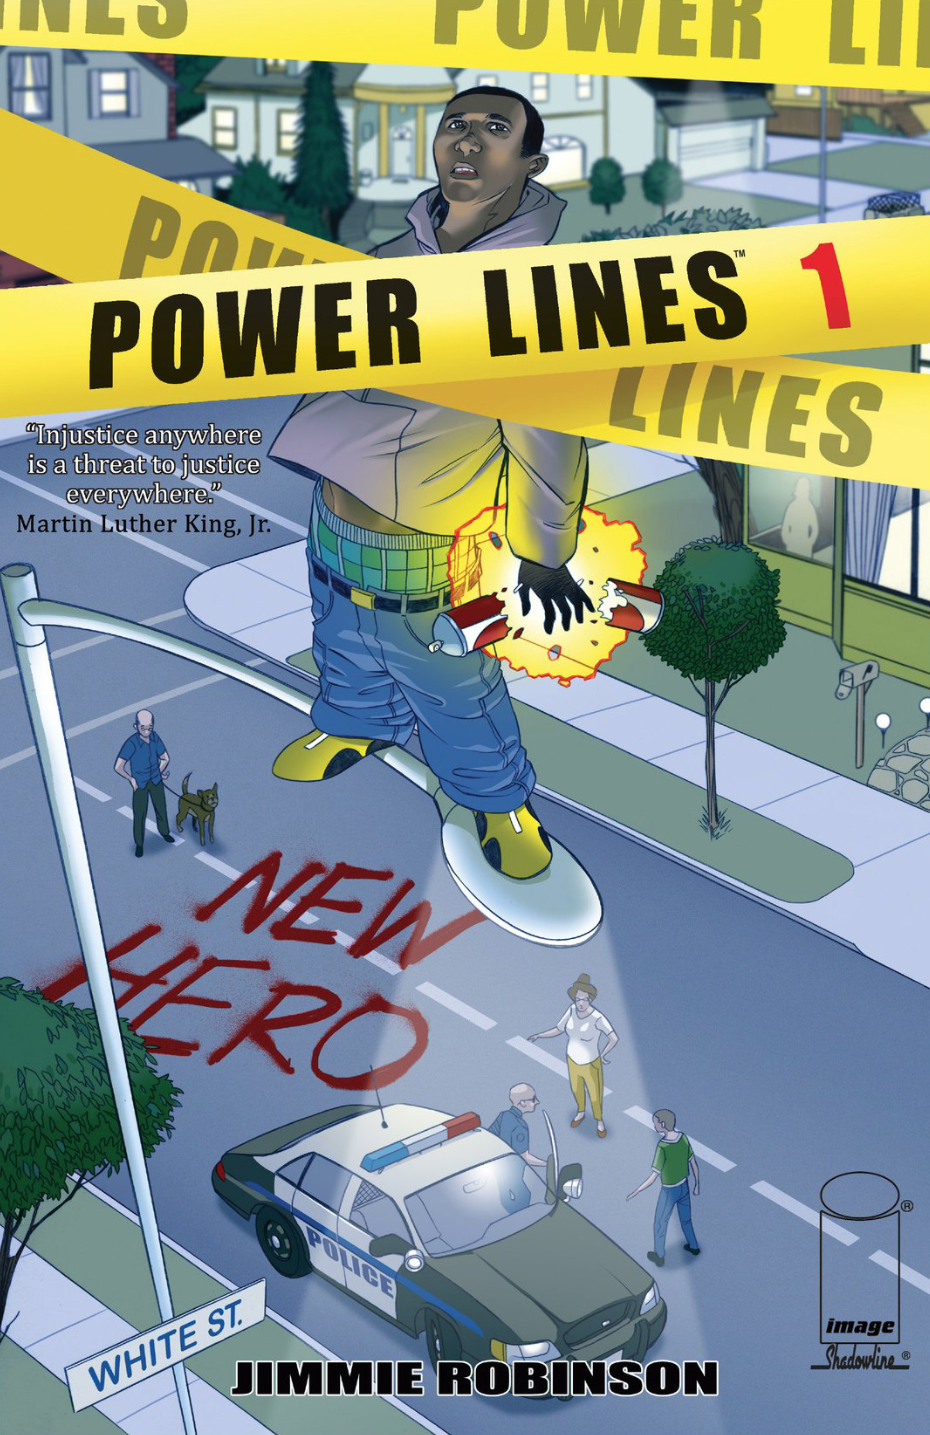 Out This Week, A Comic Book Where A Black Street Dude and A White Racist Get Superpowers